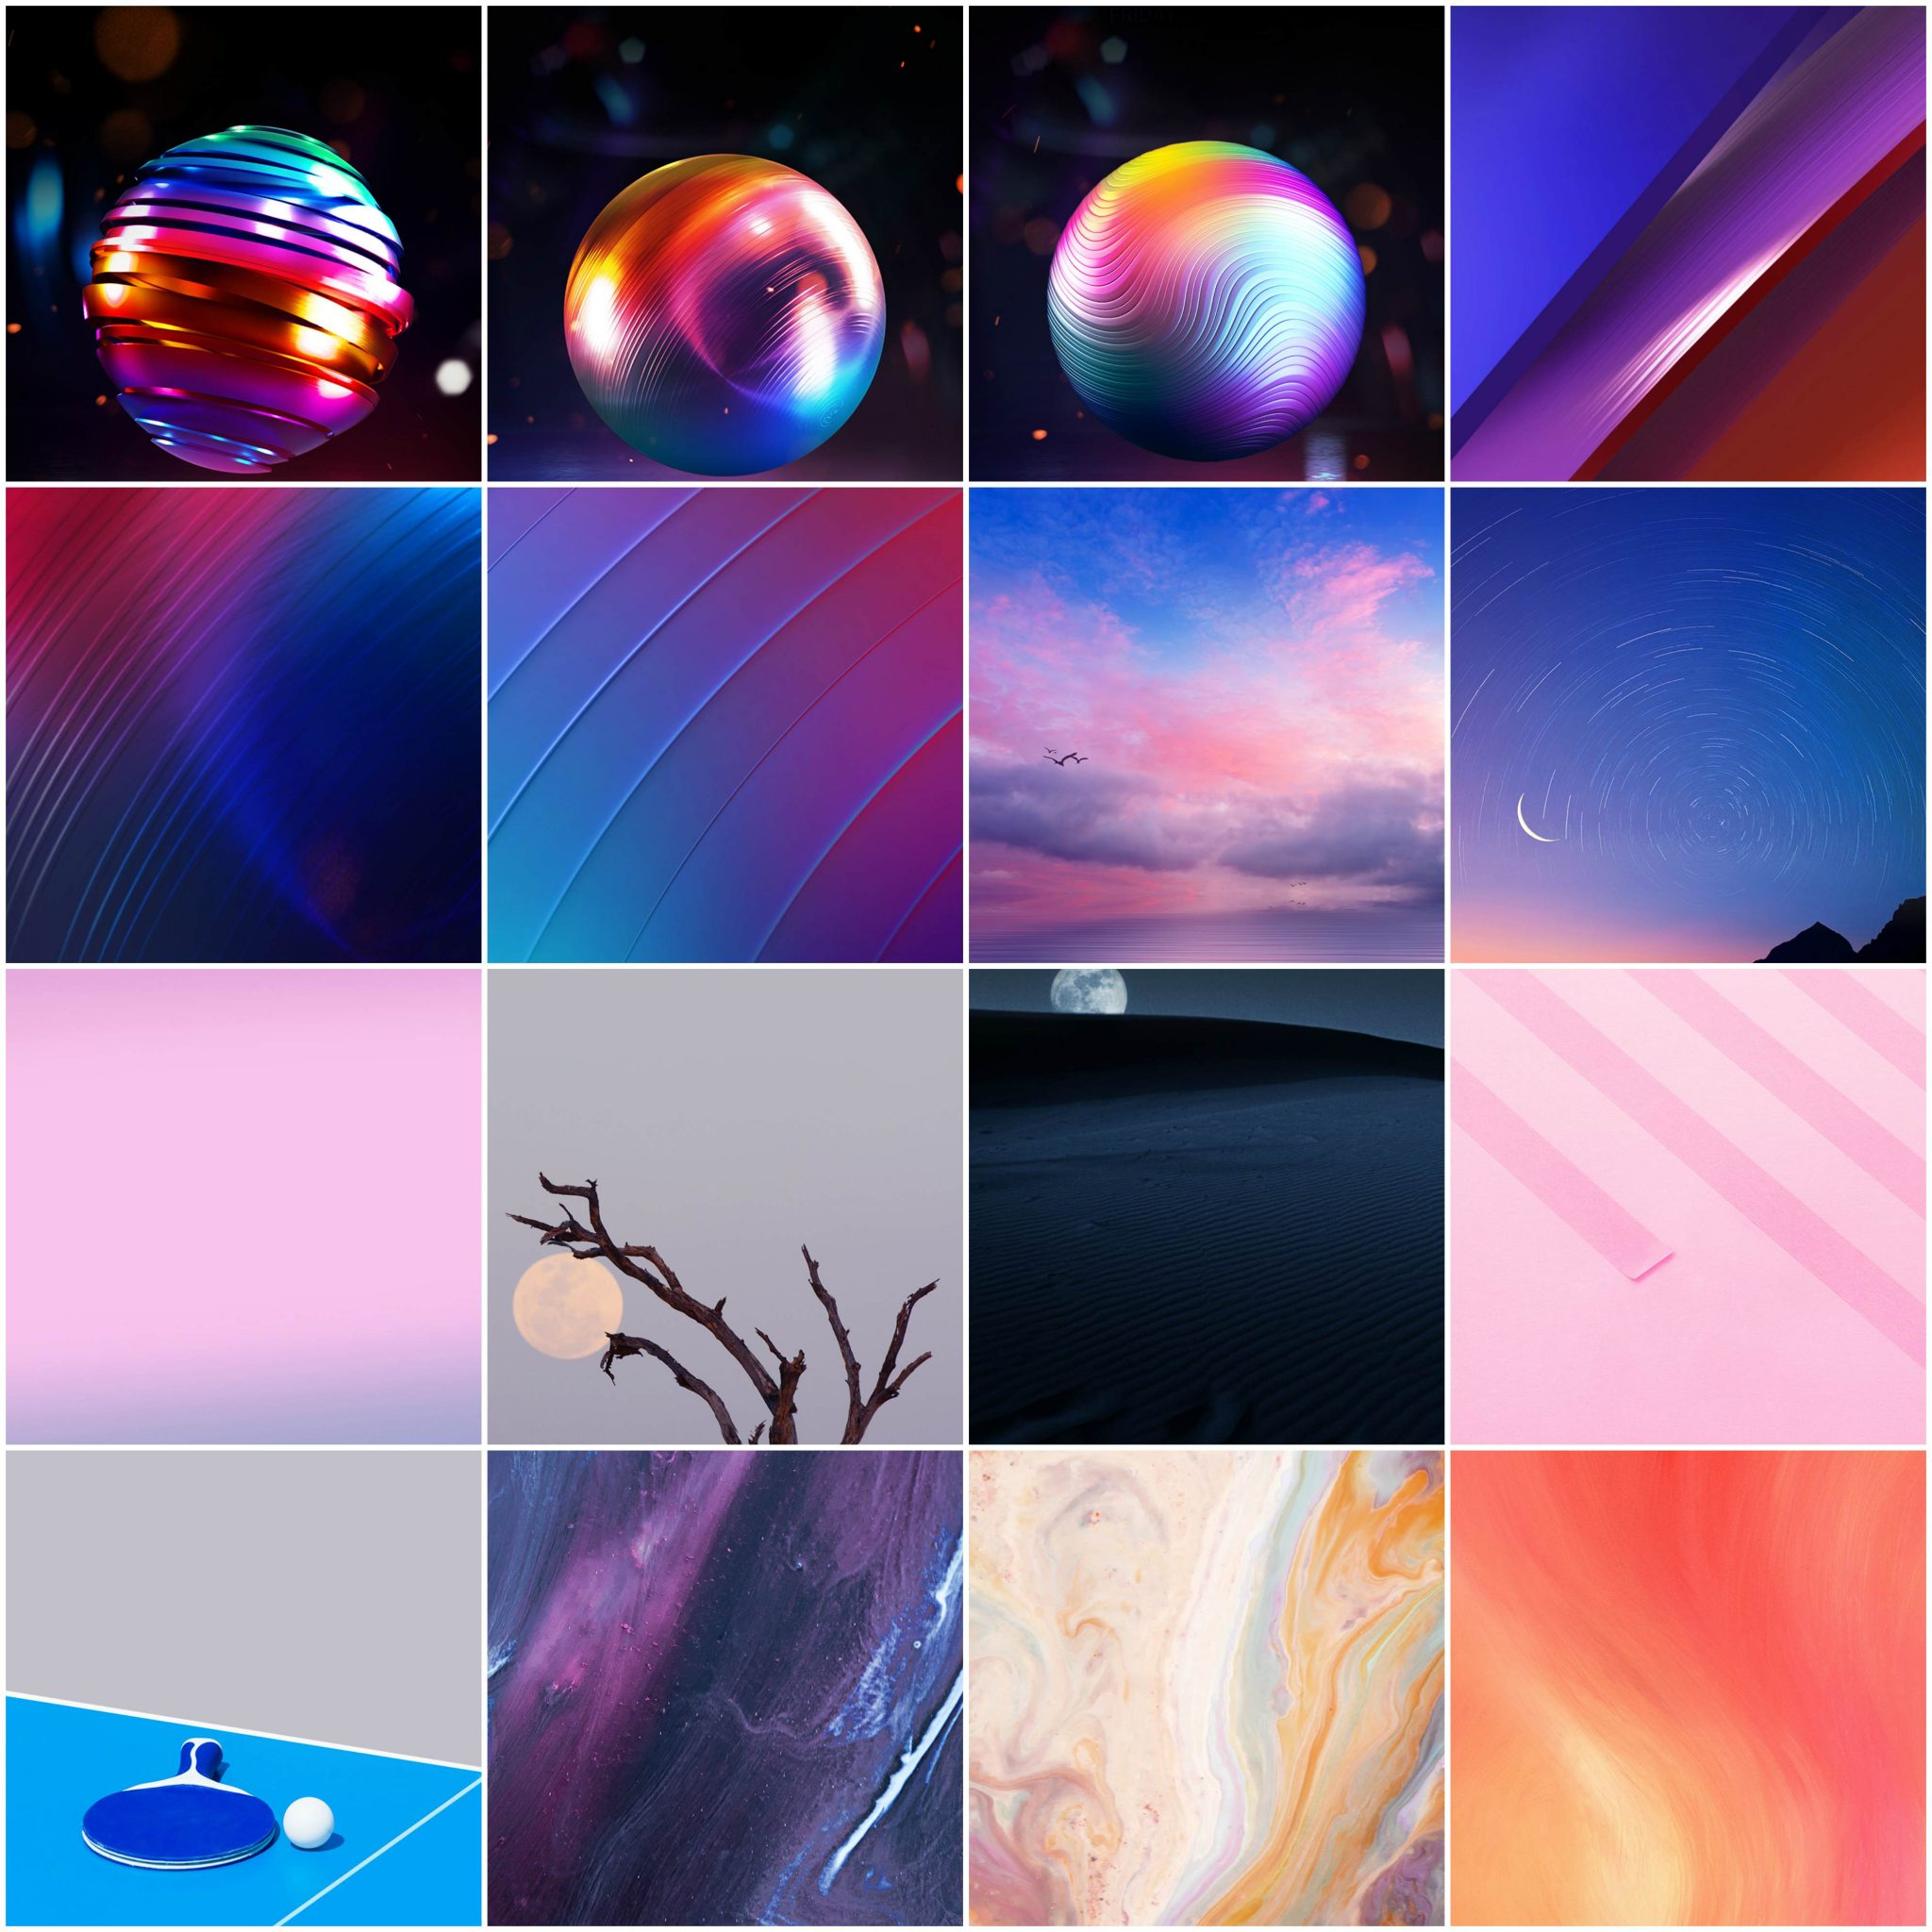 Download LG X4 Stock Wallpapers in High Quality - ZIP File Included 1